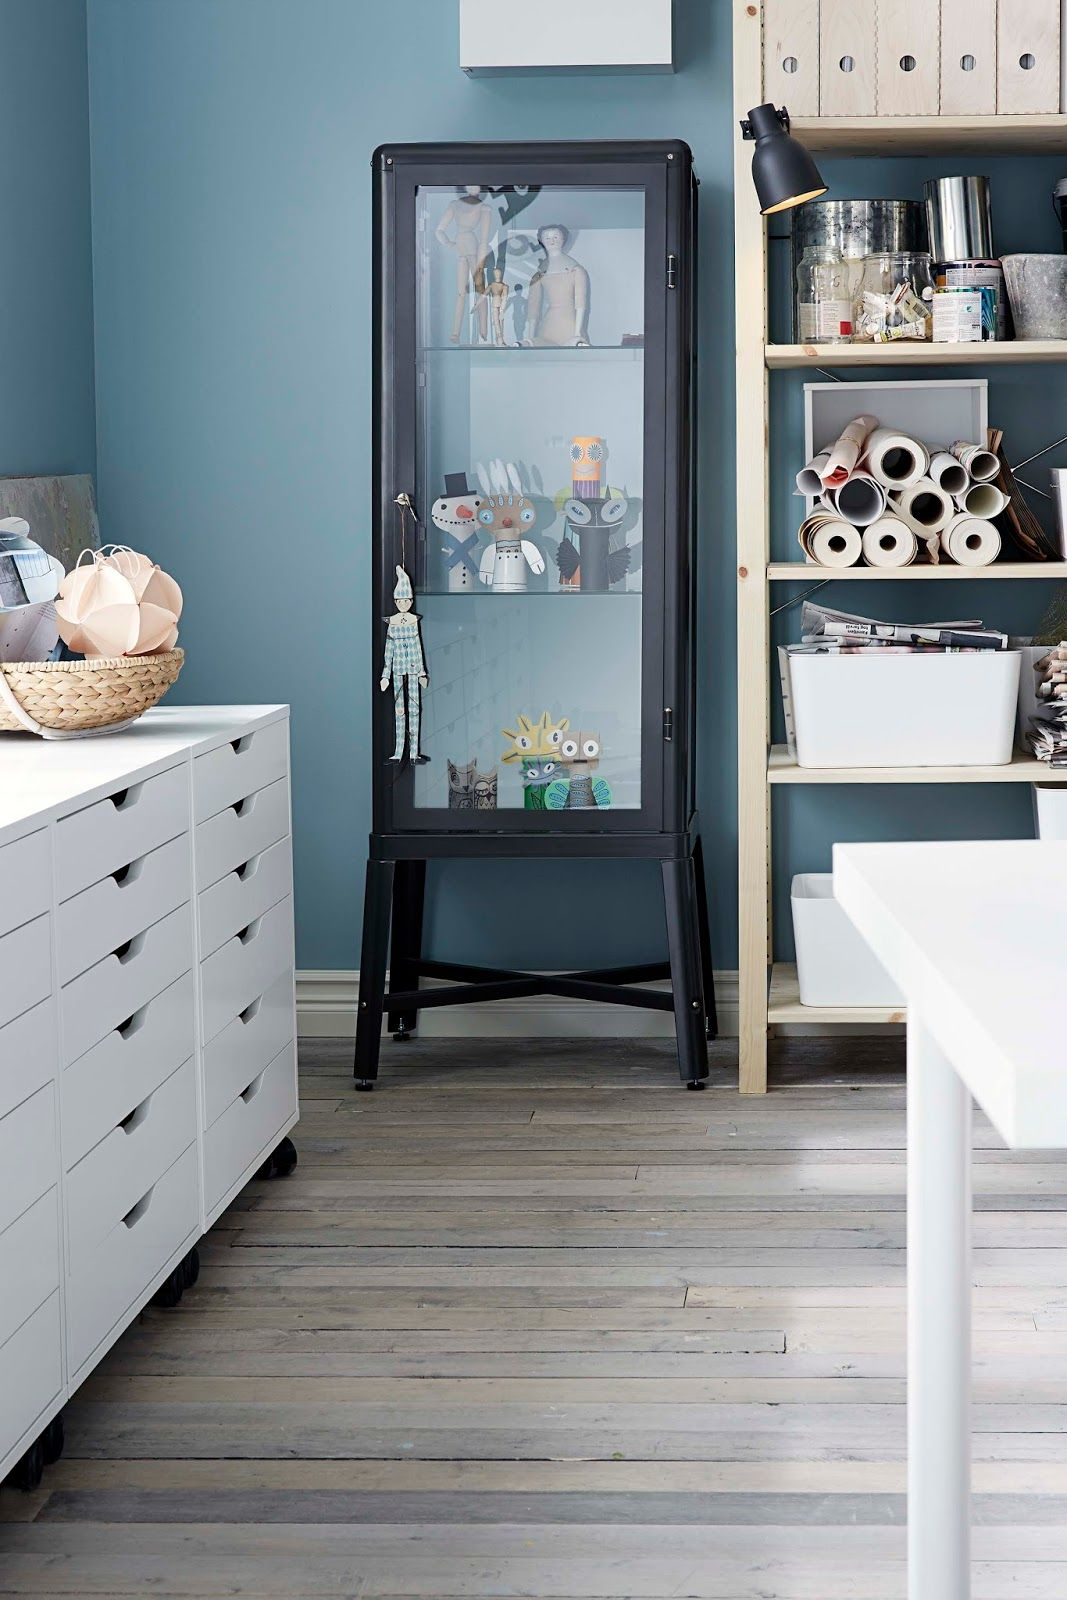 The cabinet ikea 2014 ikea pinterest the cabinet ikea 2014 and